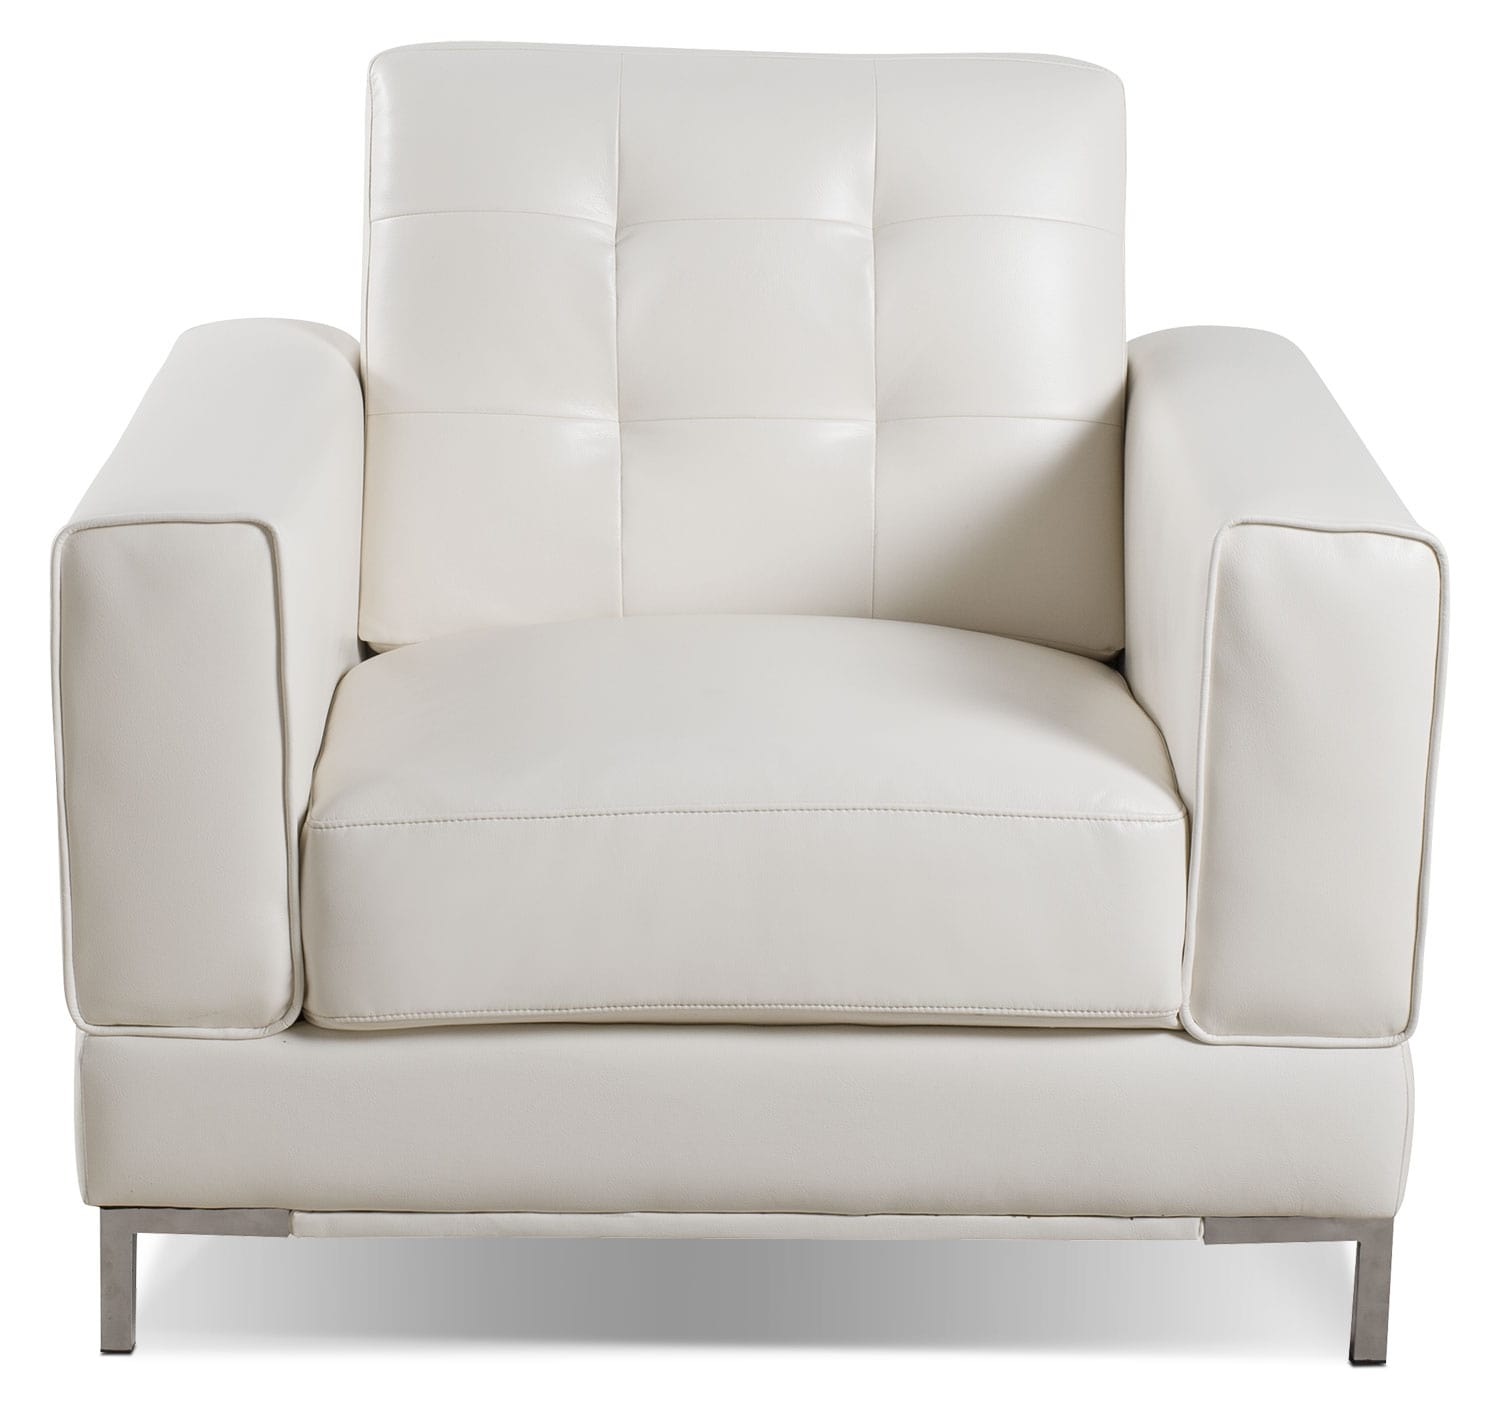 Myer Leather Look Fabric Loveseat Cream The Brick